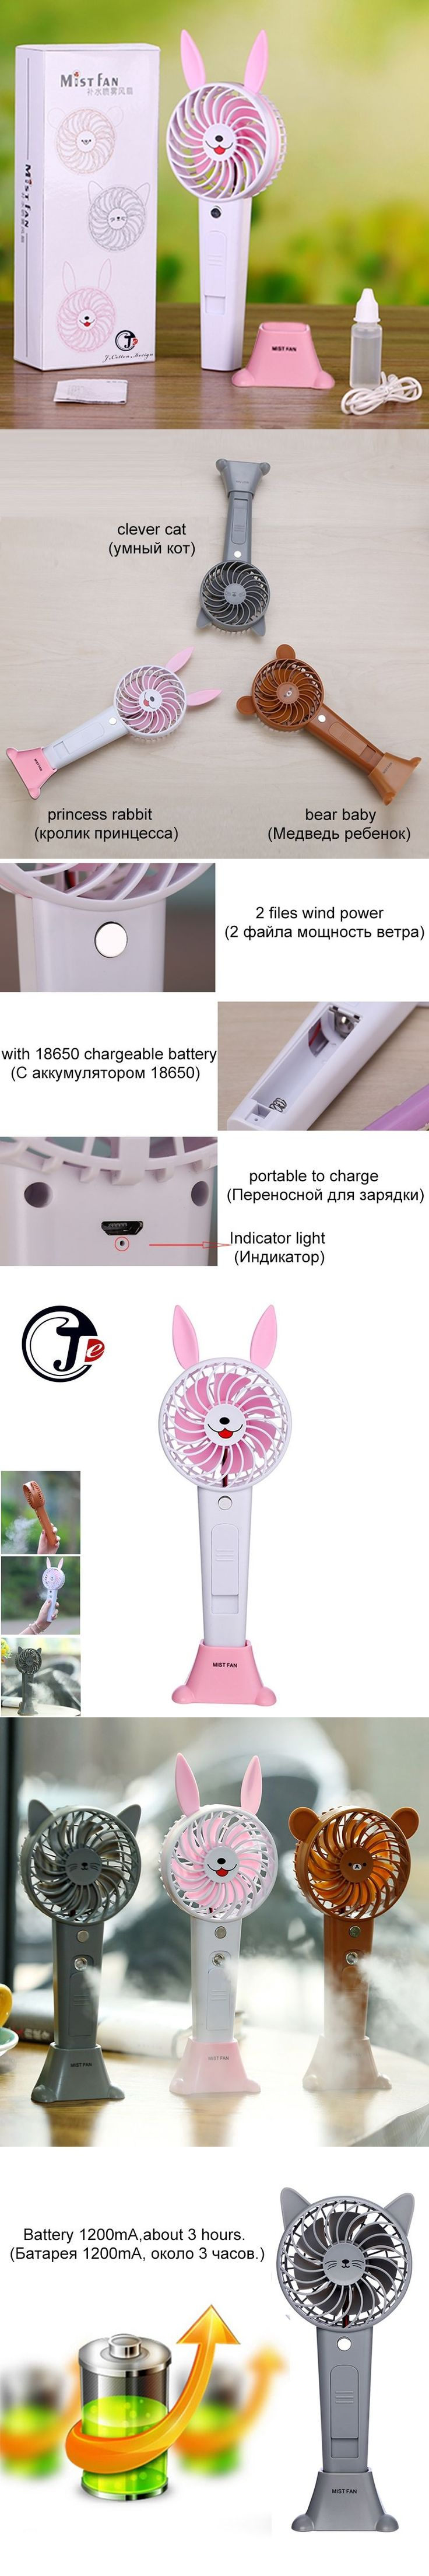 Heldhand Cute Animals Air Cooler USB Fan with 1200mA Rechargeable Battery Portable Mist Fans Air Conditioner for Home Outdoor